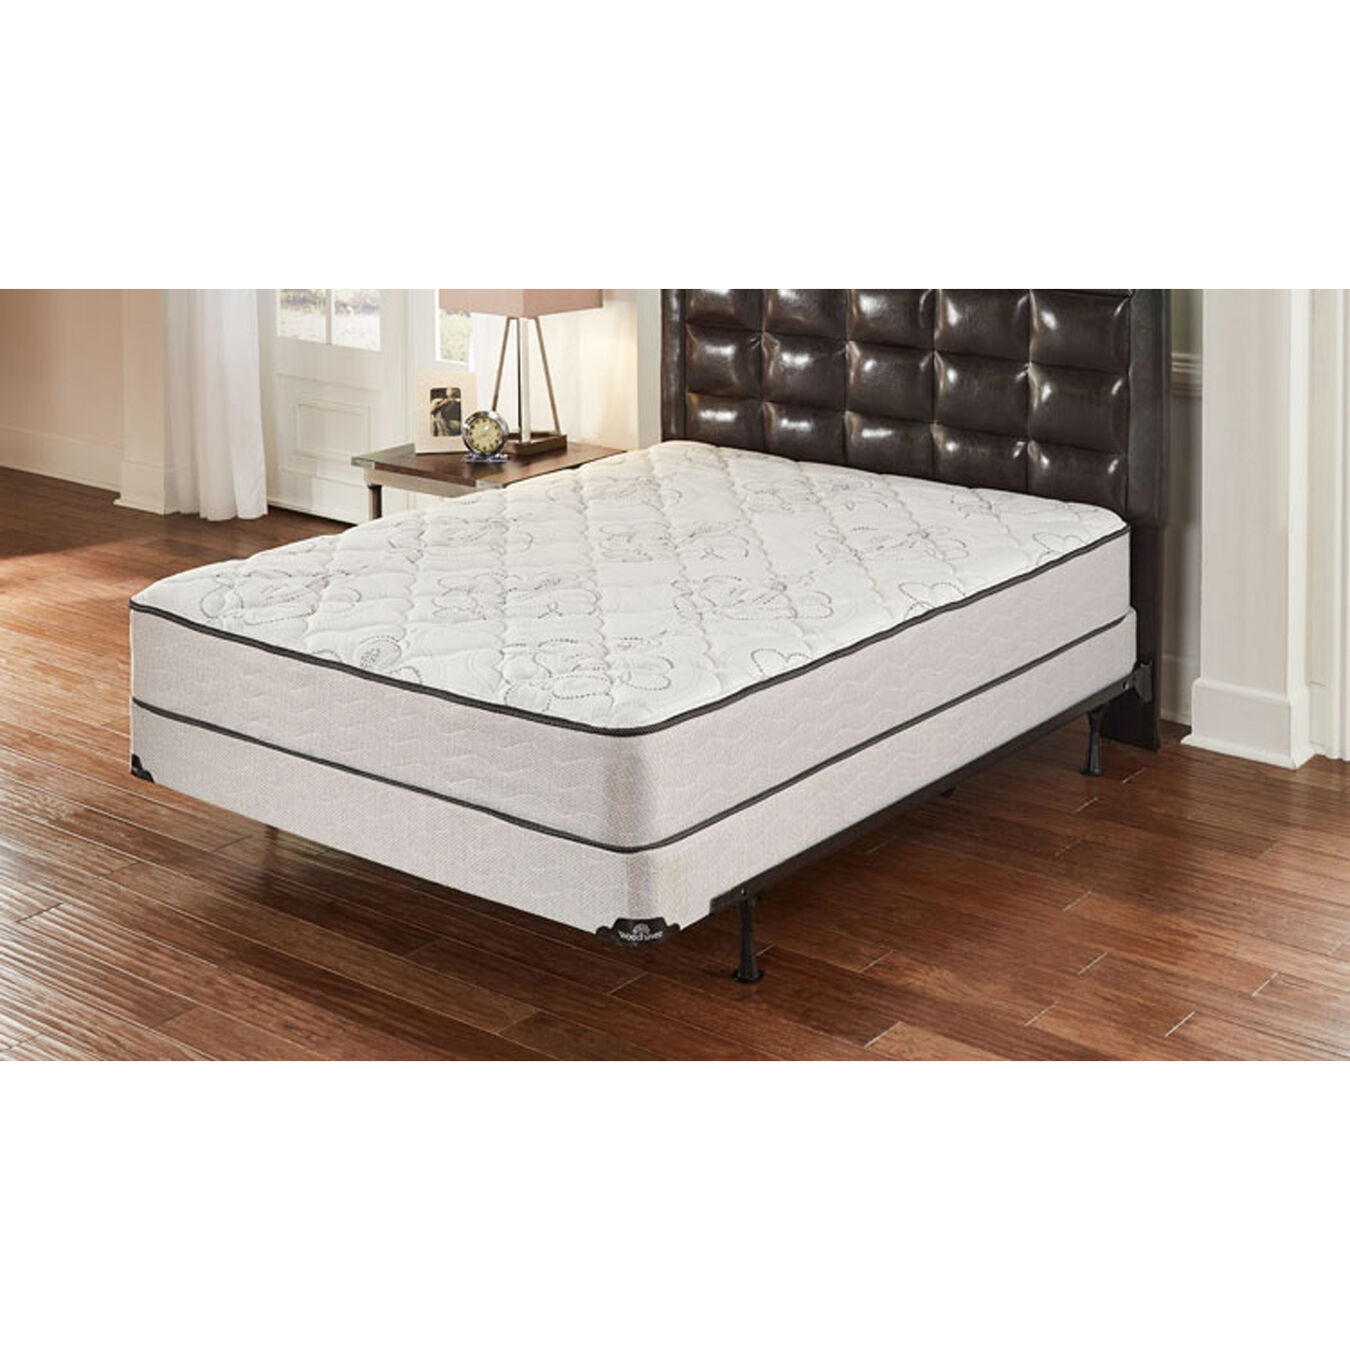 queen mattress luxury tight top with protector queen mattress bed m34 mattress